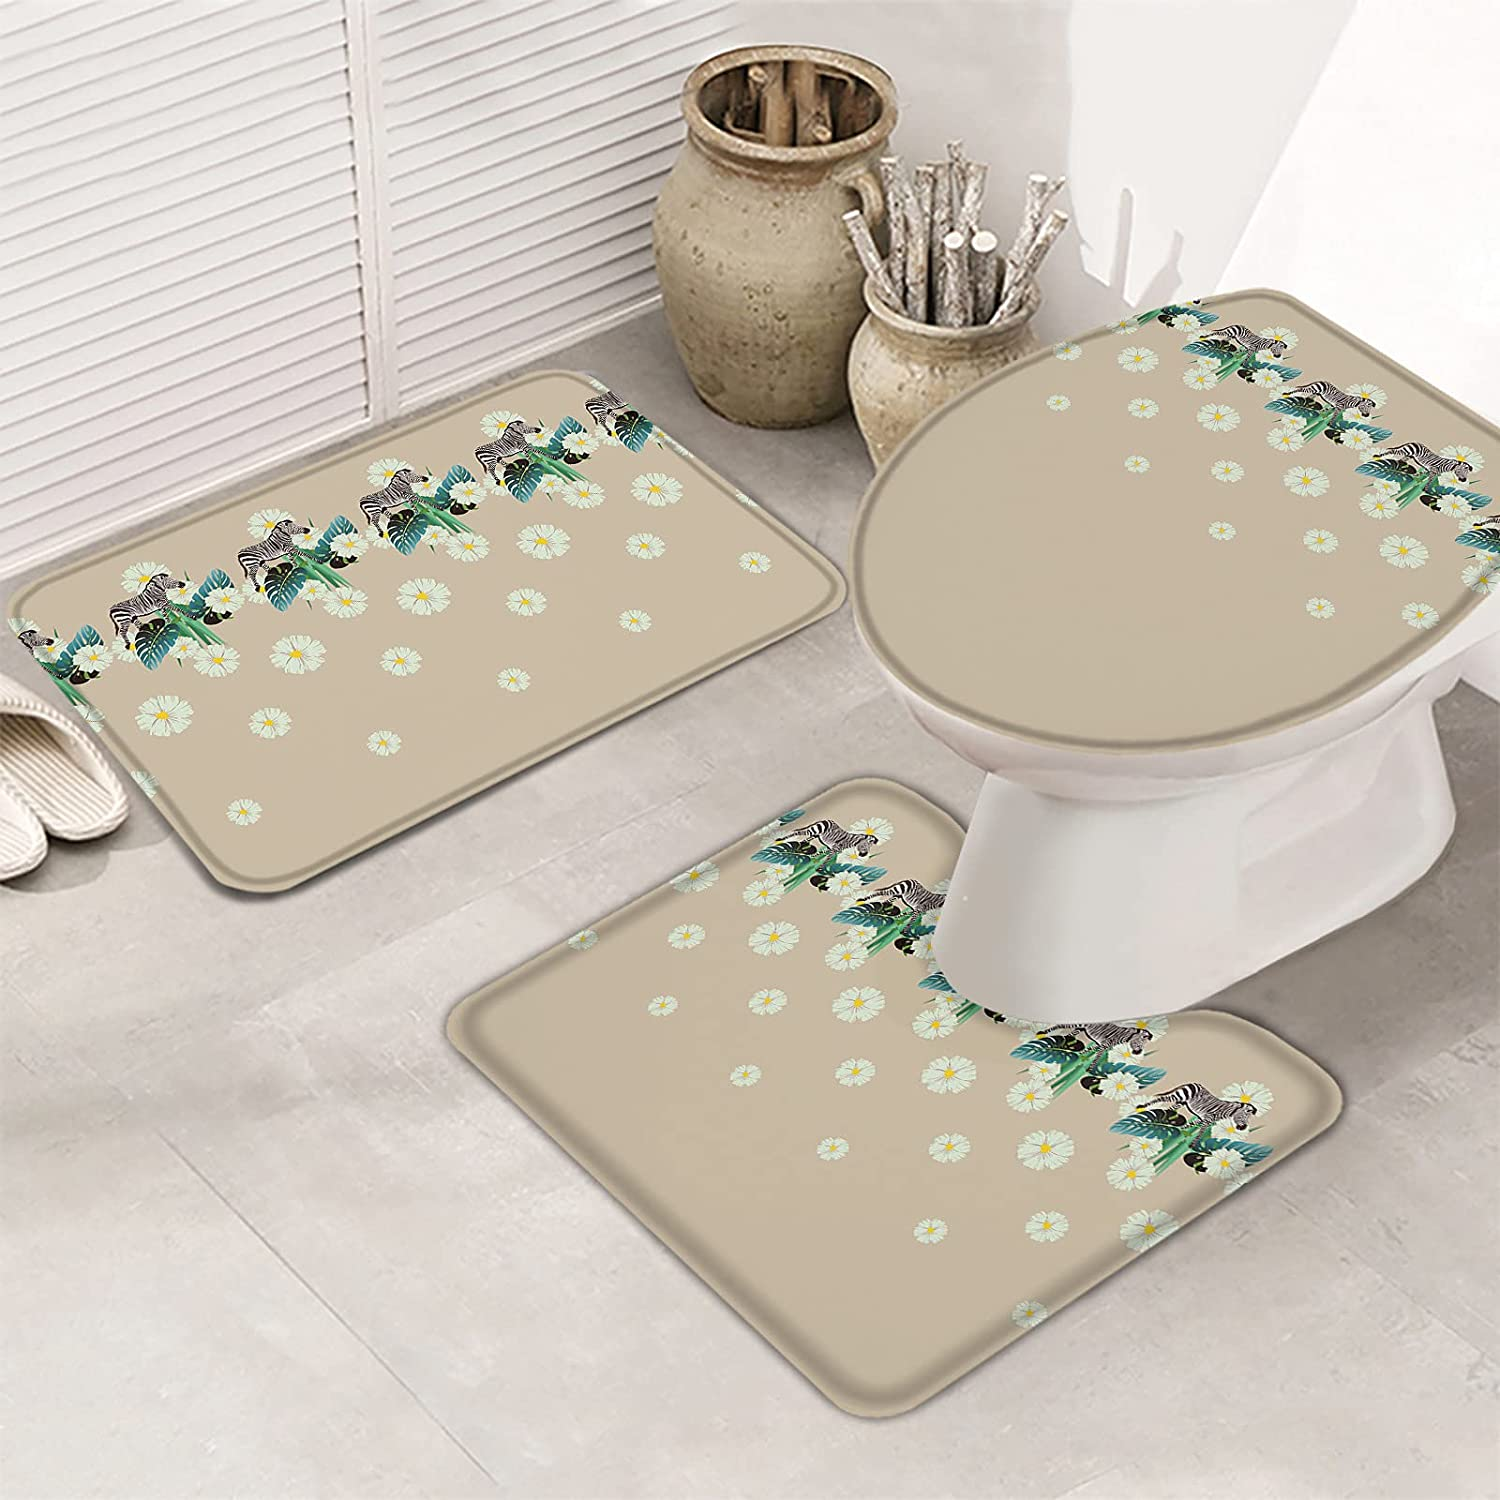 Fangship 3 Piece Bathroom Rugs Set Non Sl It safety is very popular Bath Mats for